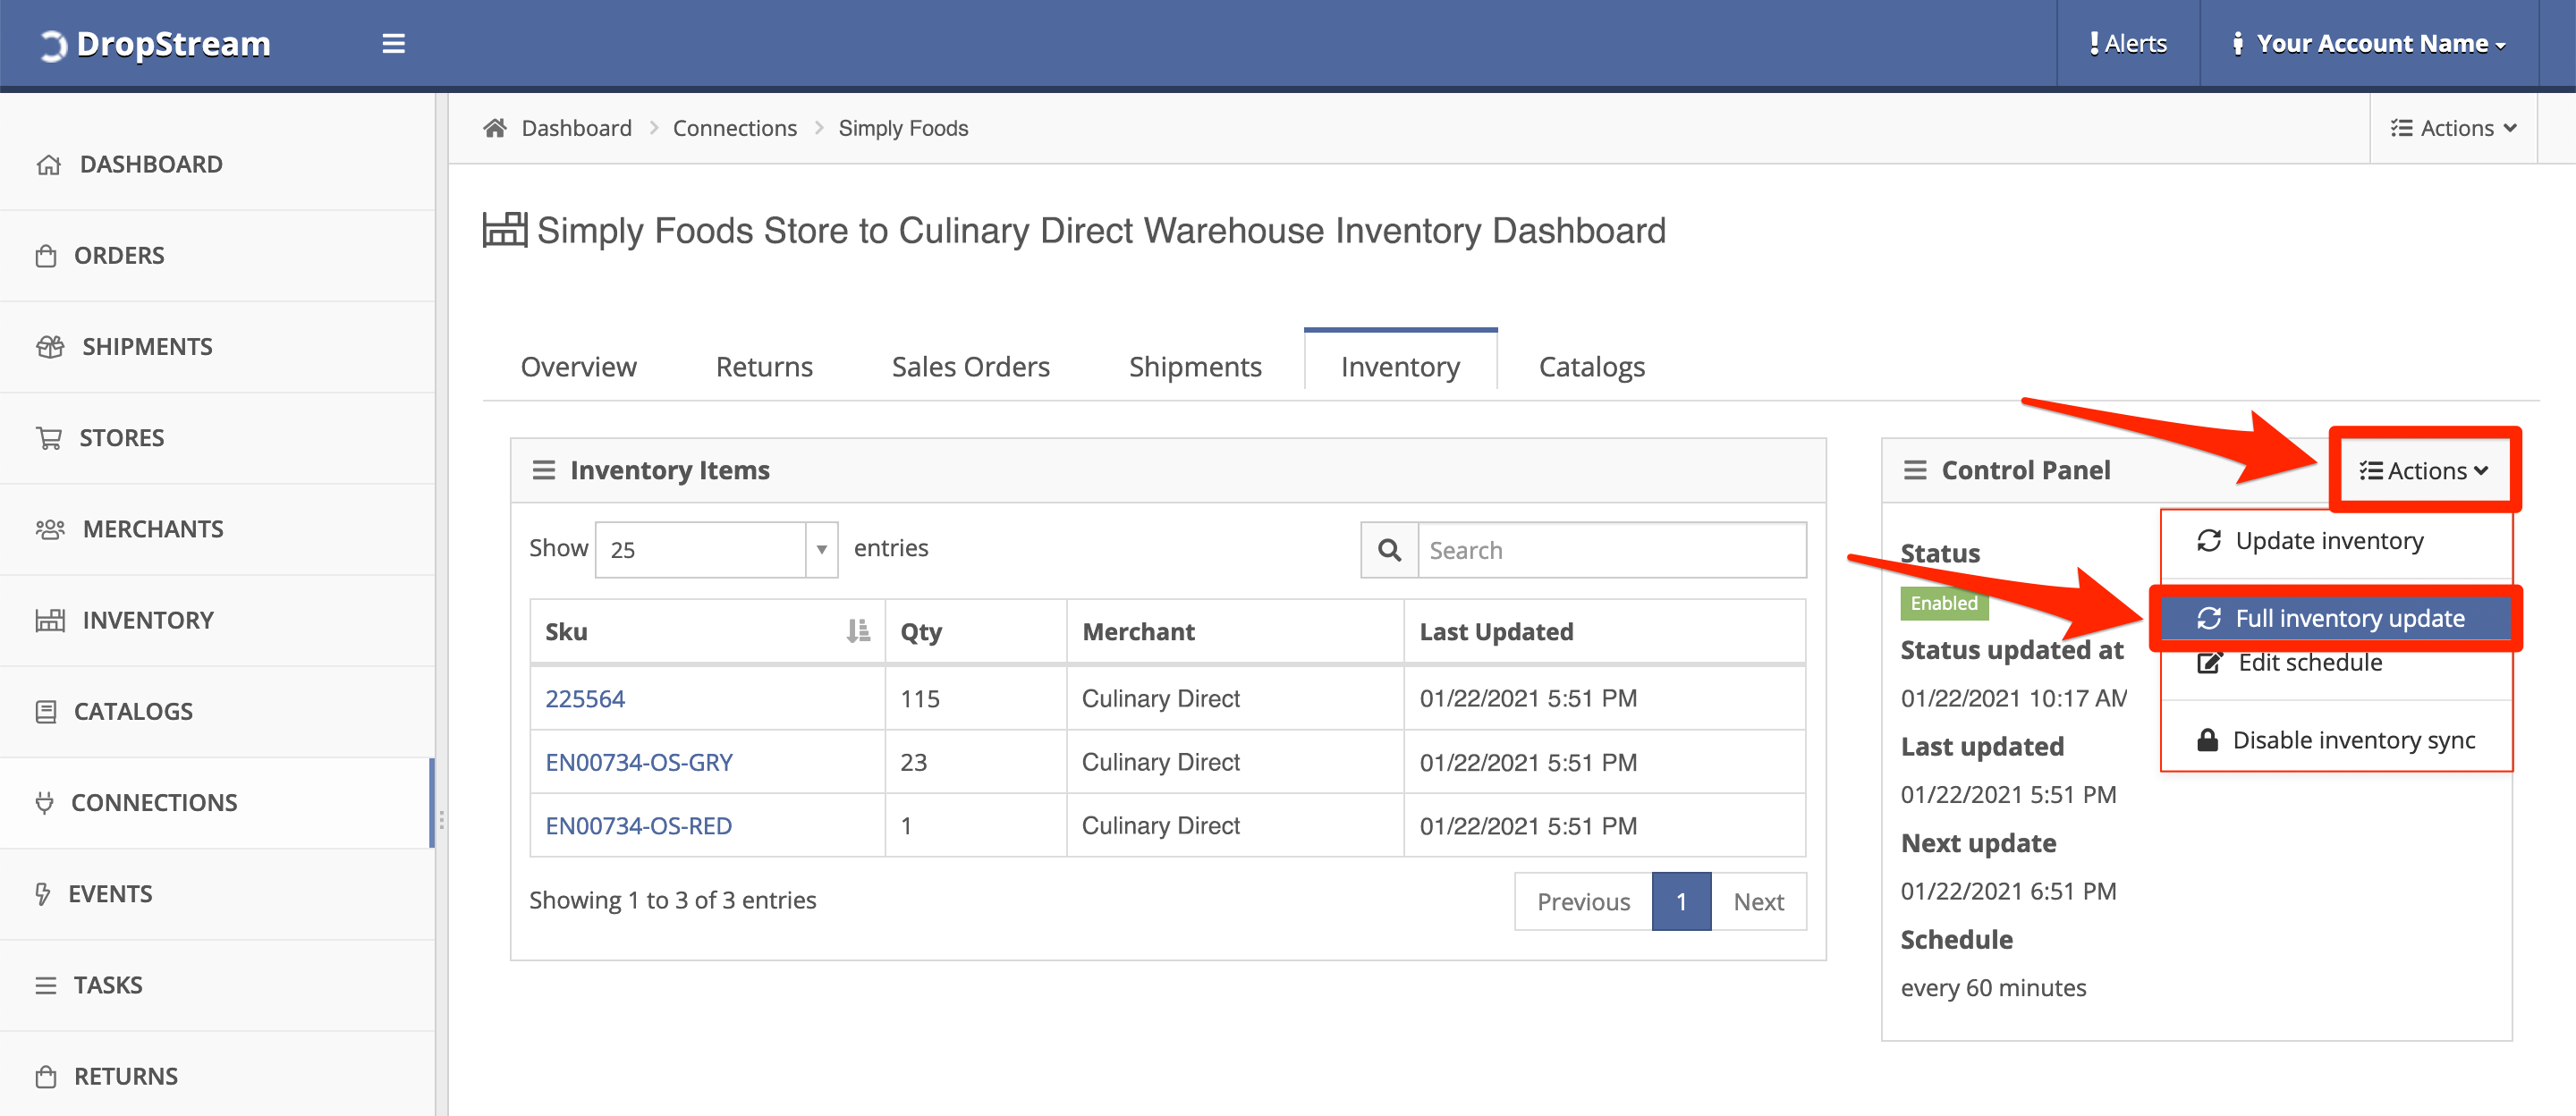 In Control Panel, click Actions, Full inventory update.